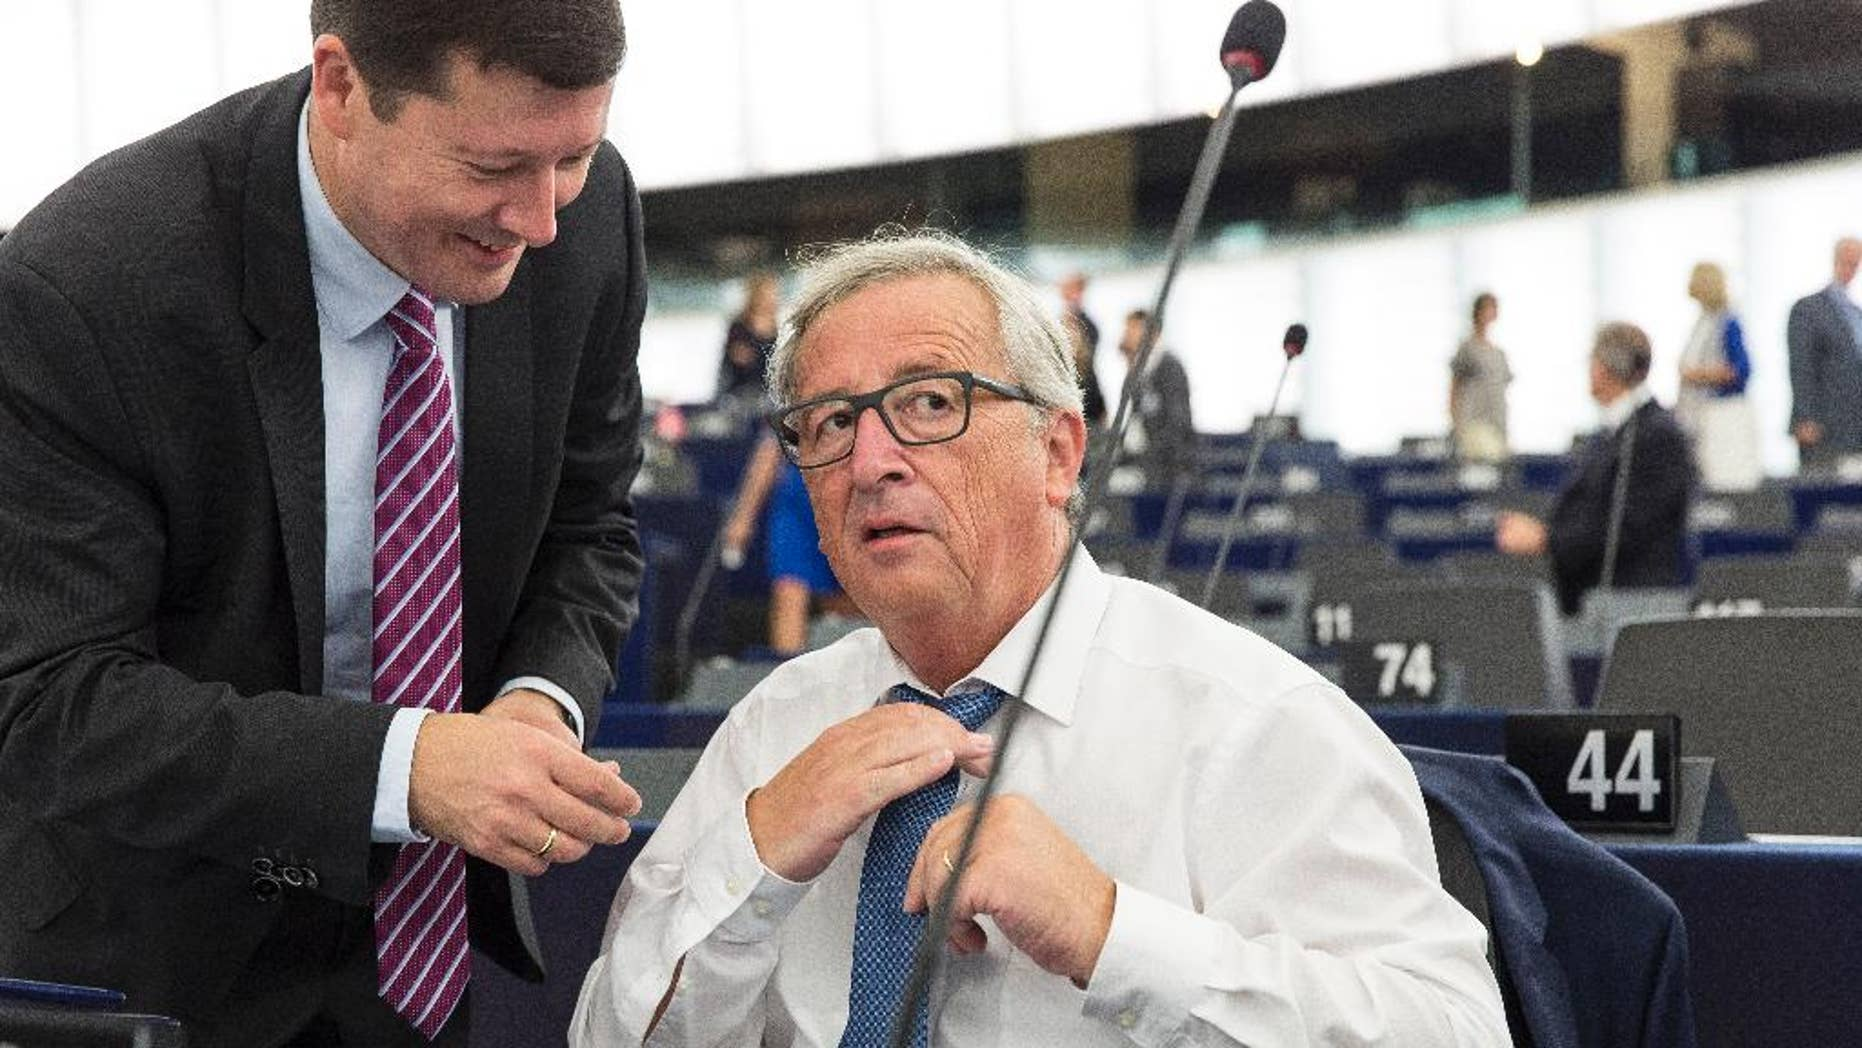 """The head of the European Union's executive, Jean-Claude Juncker, adjusts his tie next to the head of the president's cabinet, Martin Selmayer, left, as he prepares to deliver his State of the Union address at the European Parliament in Strasbourg, eastern France, Wednesday, Sept. 14, 2016. EU Commission President Jean-Claude Juncker said in his State of the European Union address to the European parliament that the EU """"still does not have enough Union.""""(AP Photo/Jean-Francois Badias)"""